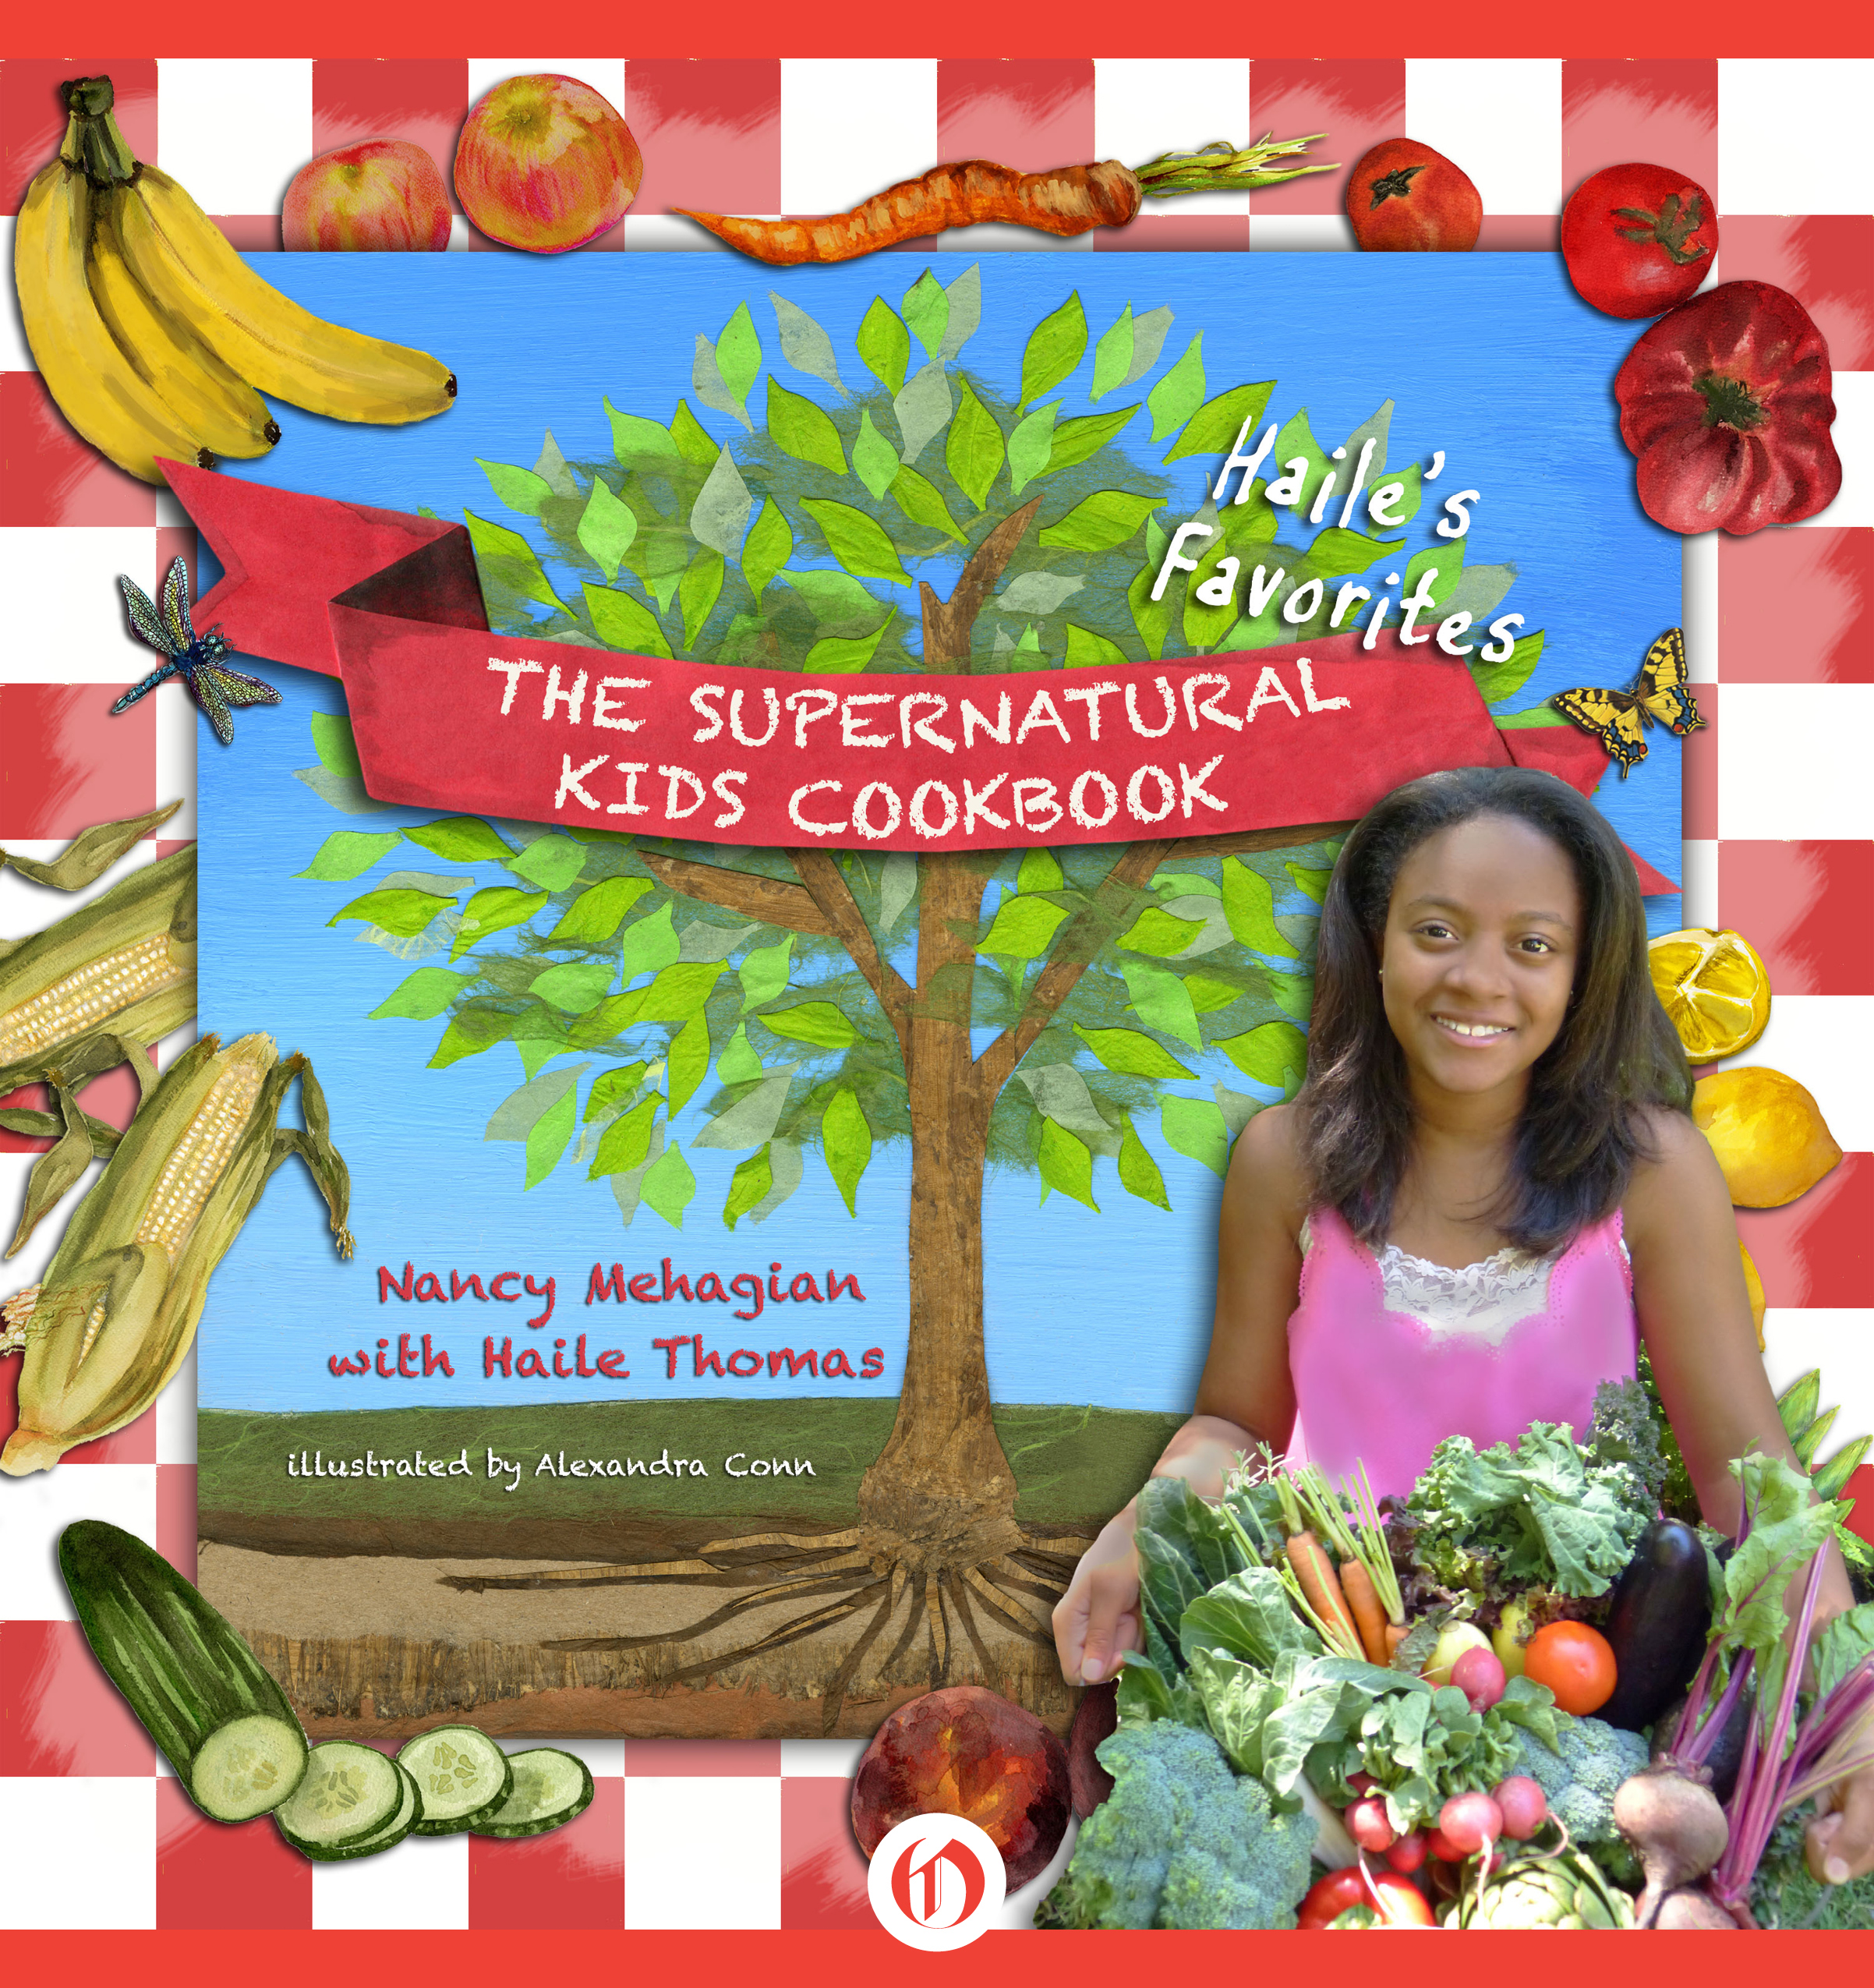 The Supernatural Kids Cookbook: Haile's Favorites